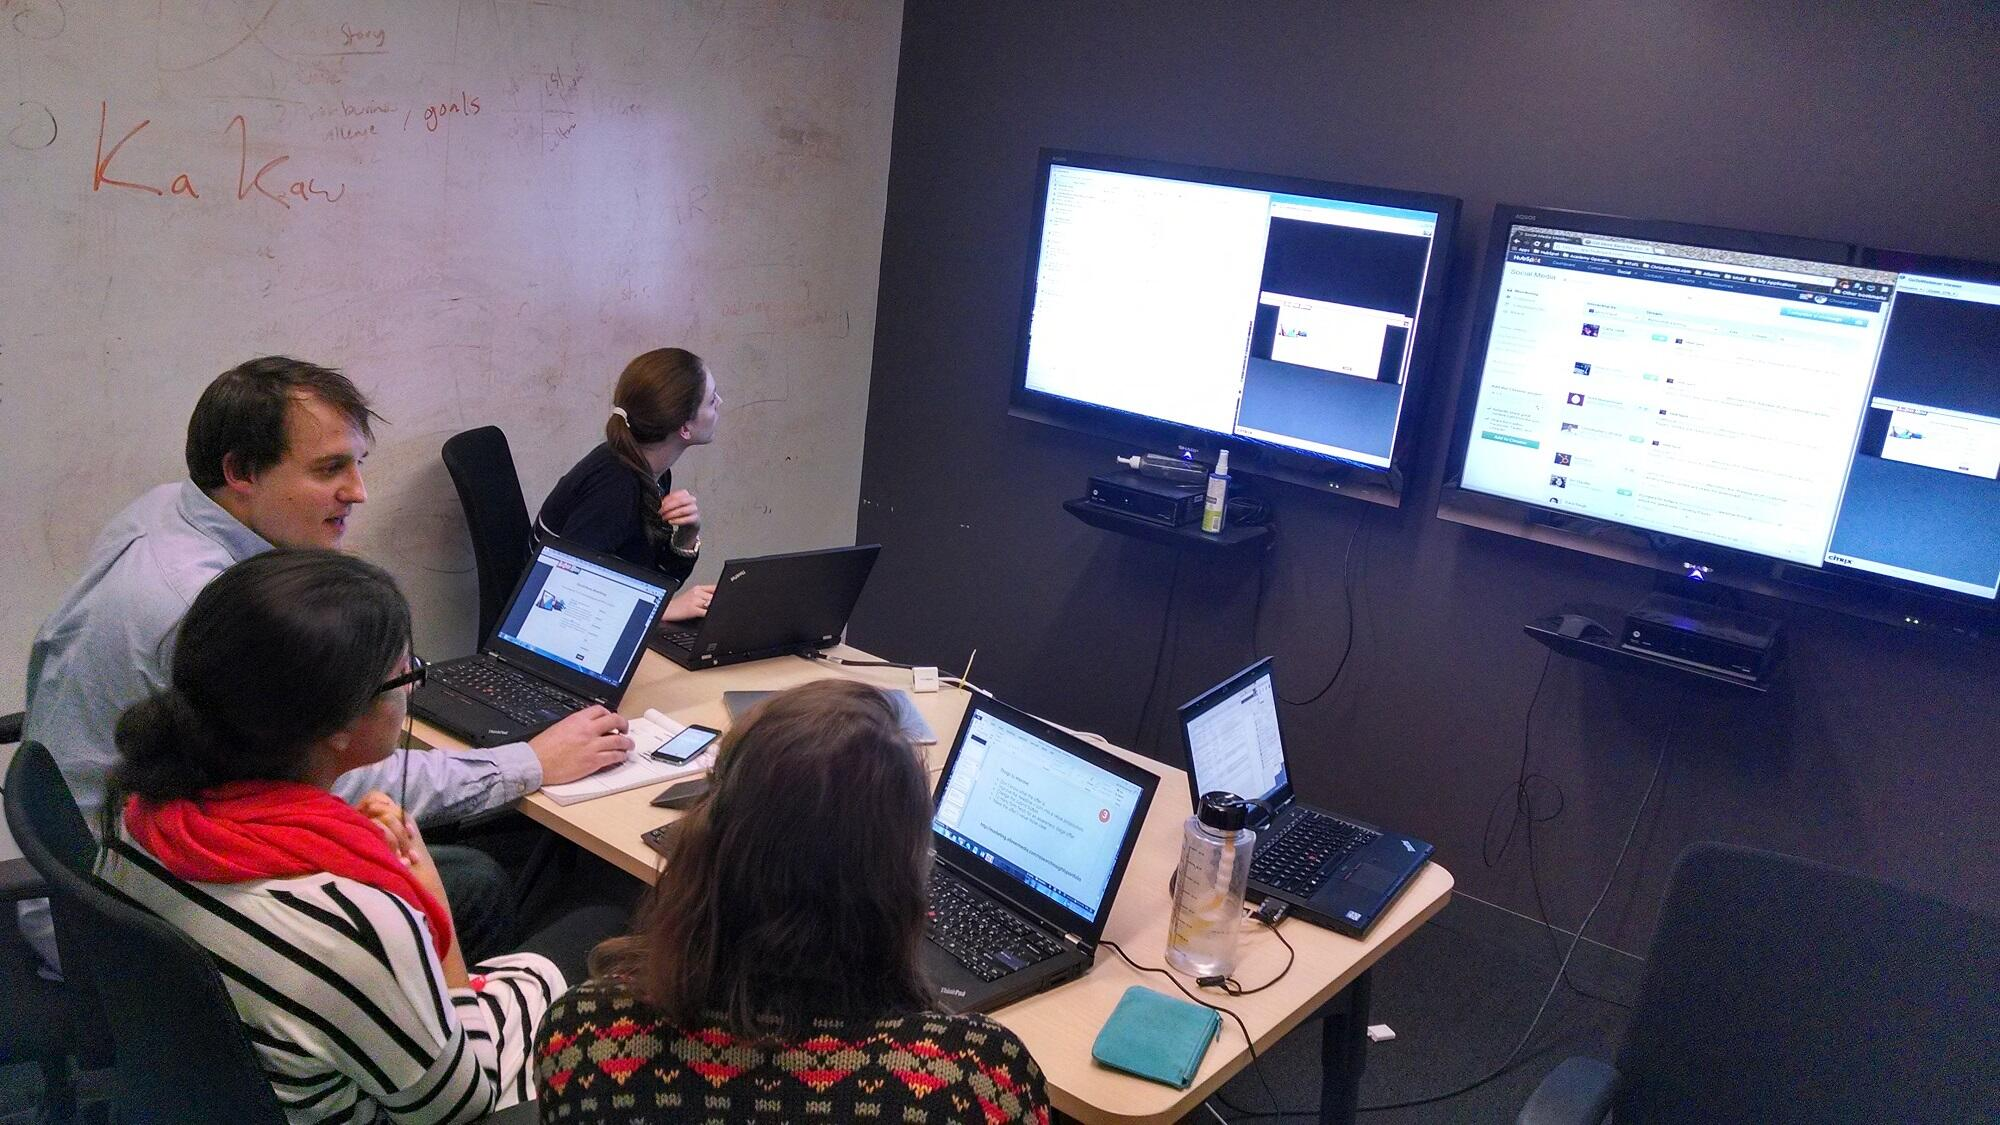 Twitter / ChrisLoDolce: #InboundLearning command center ...